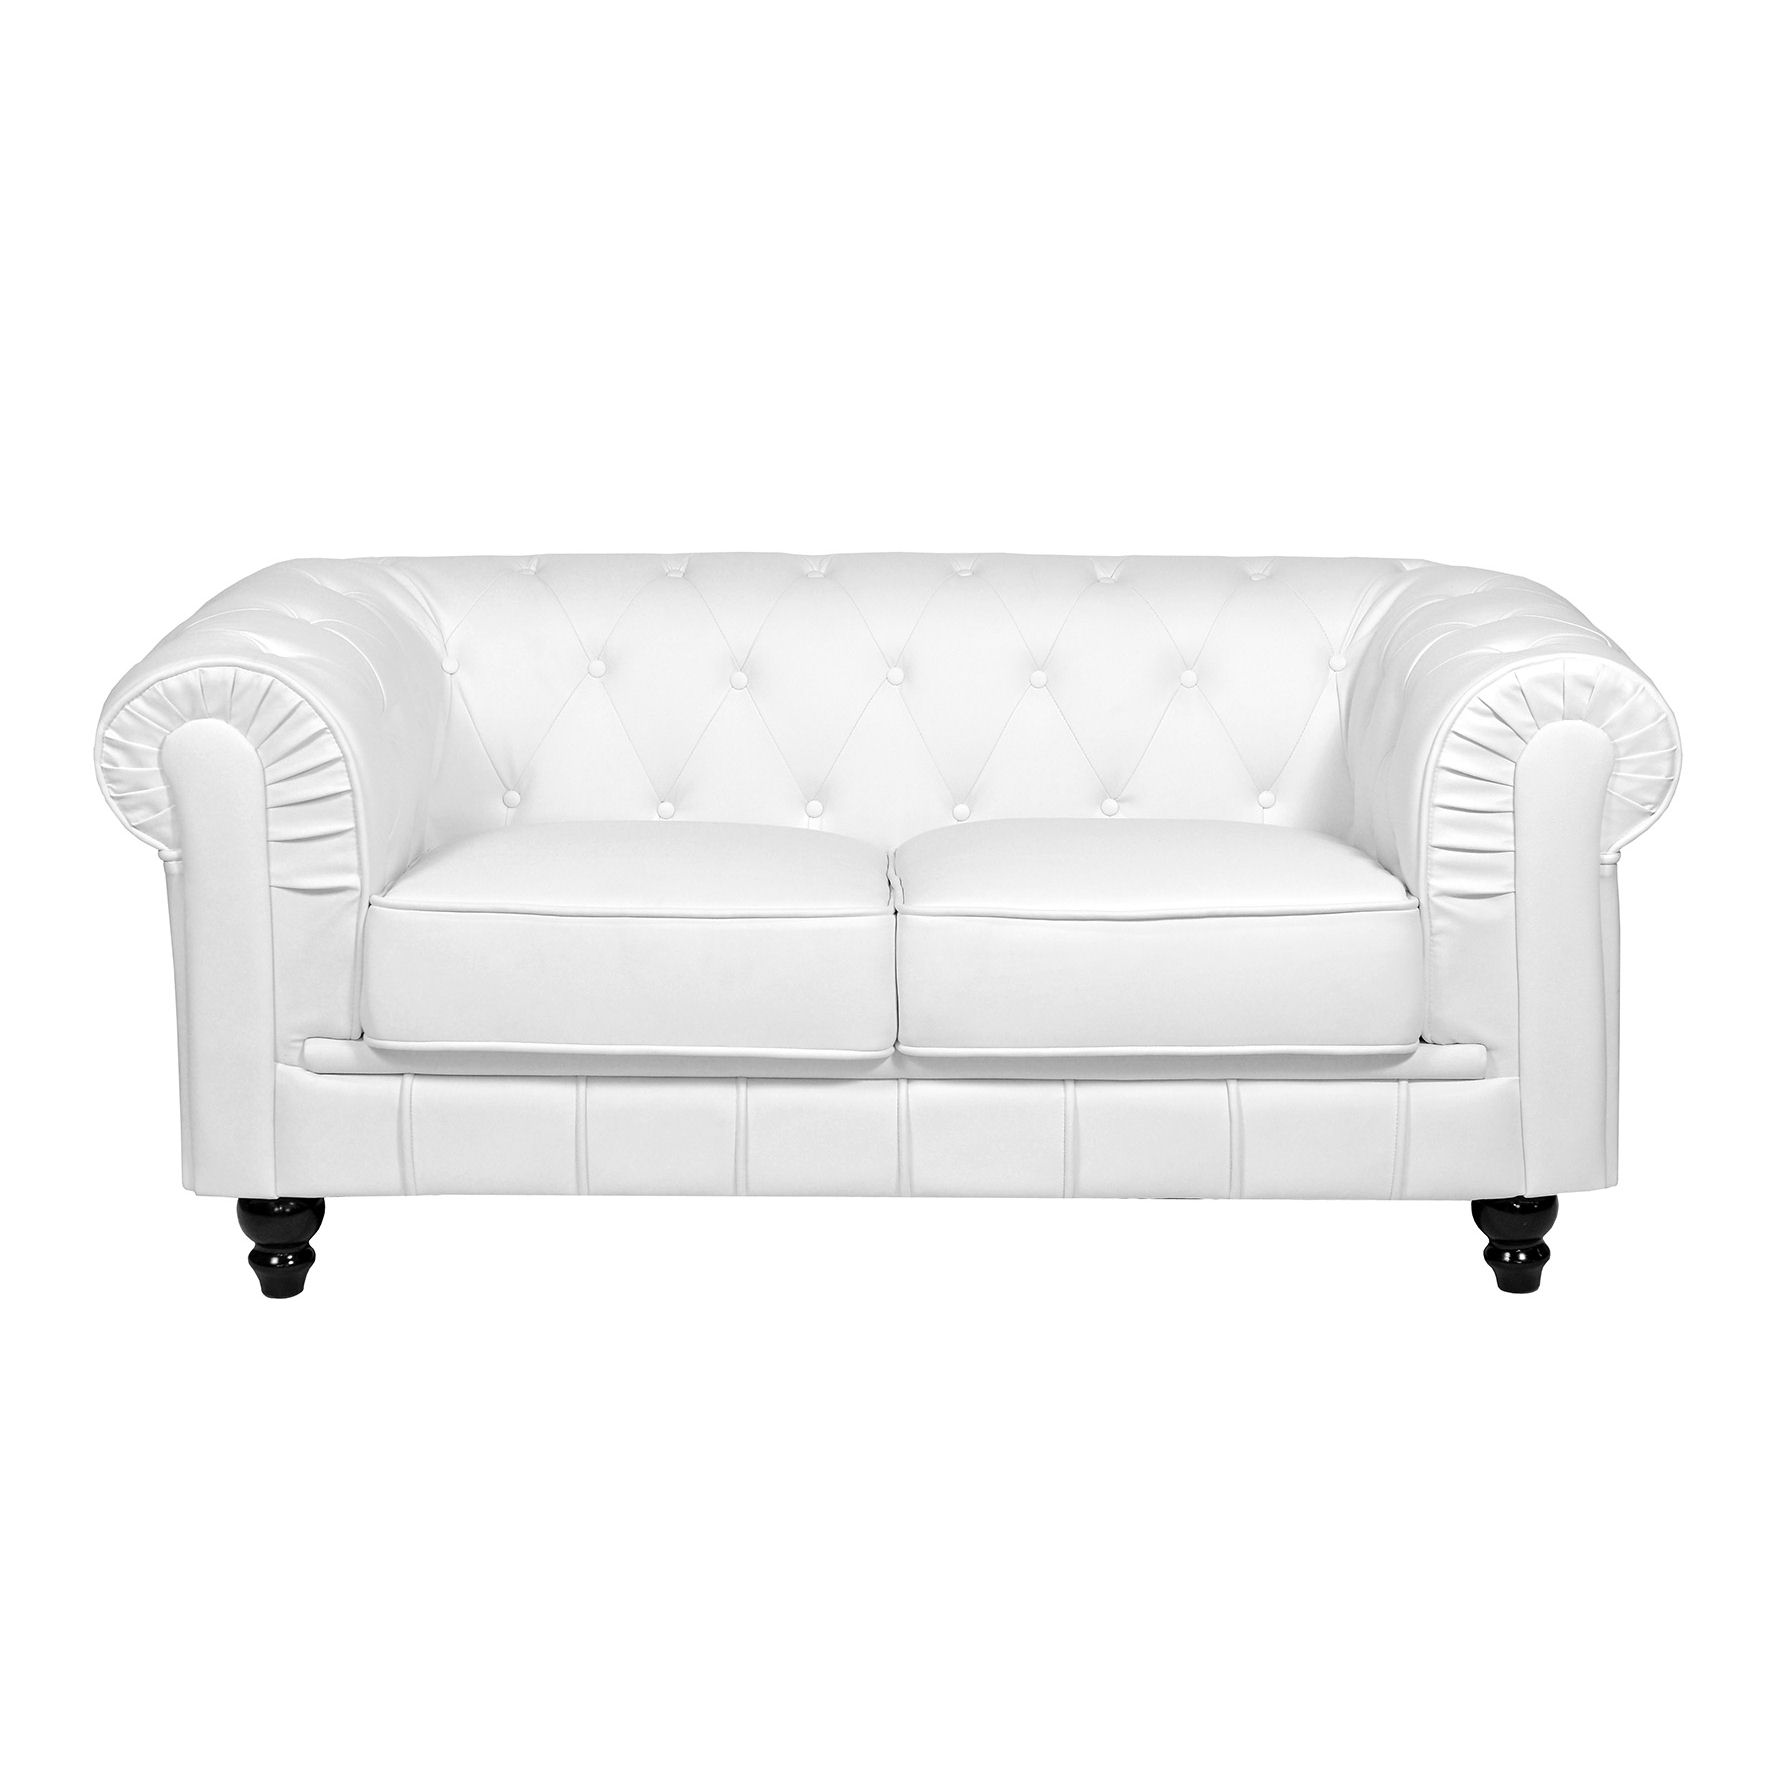 Deco in paris canape 2 places blanc chesterfield can for Canape blanc 2 places